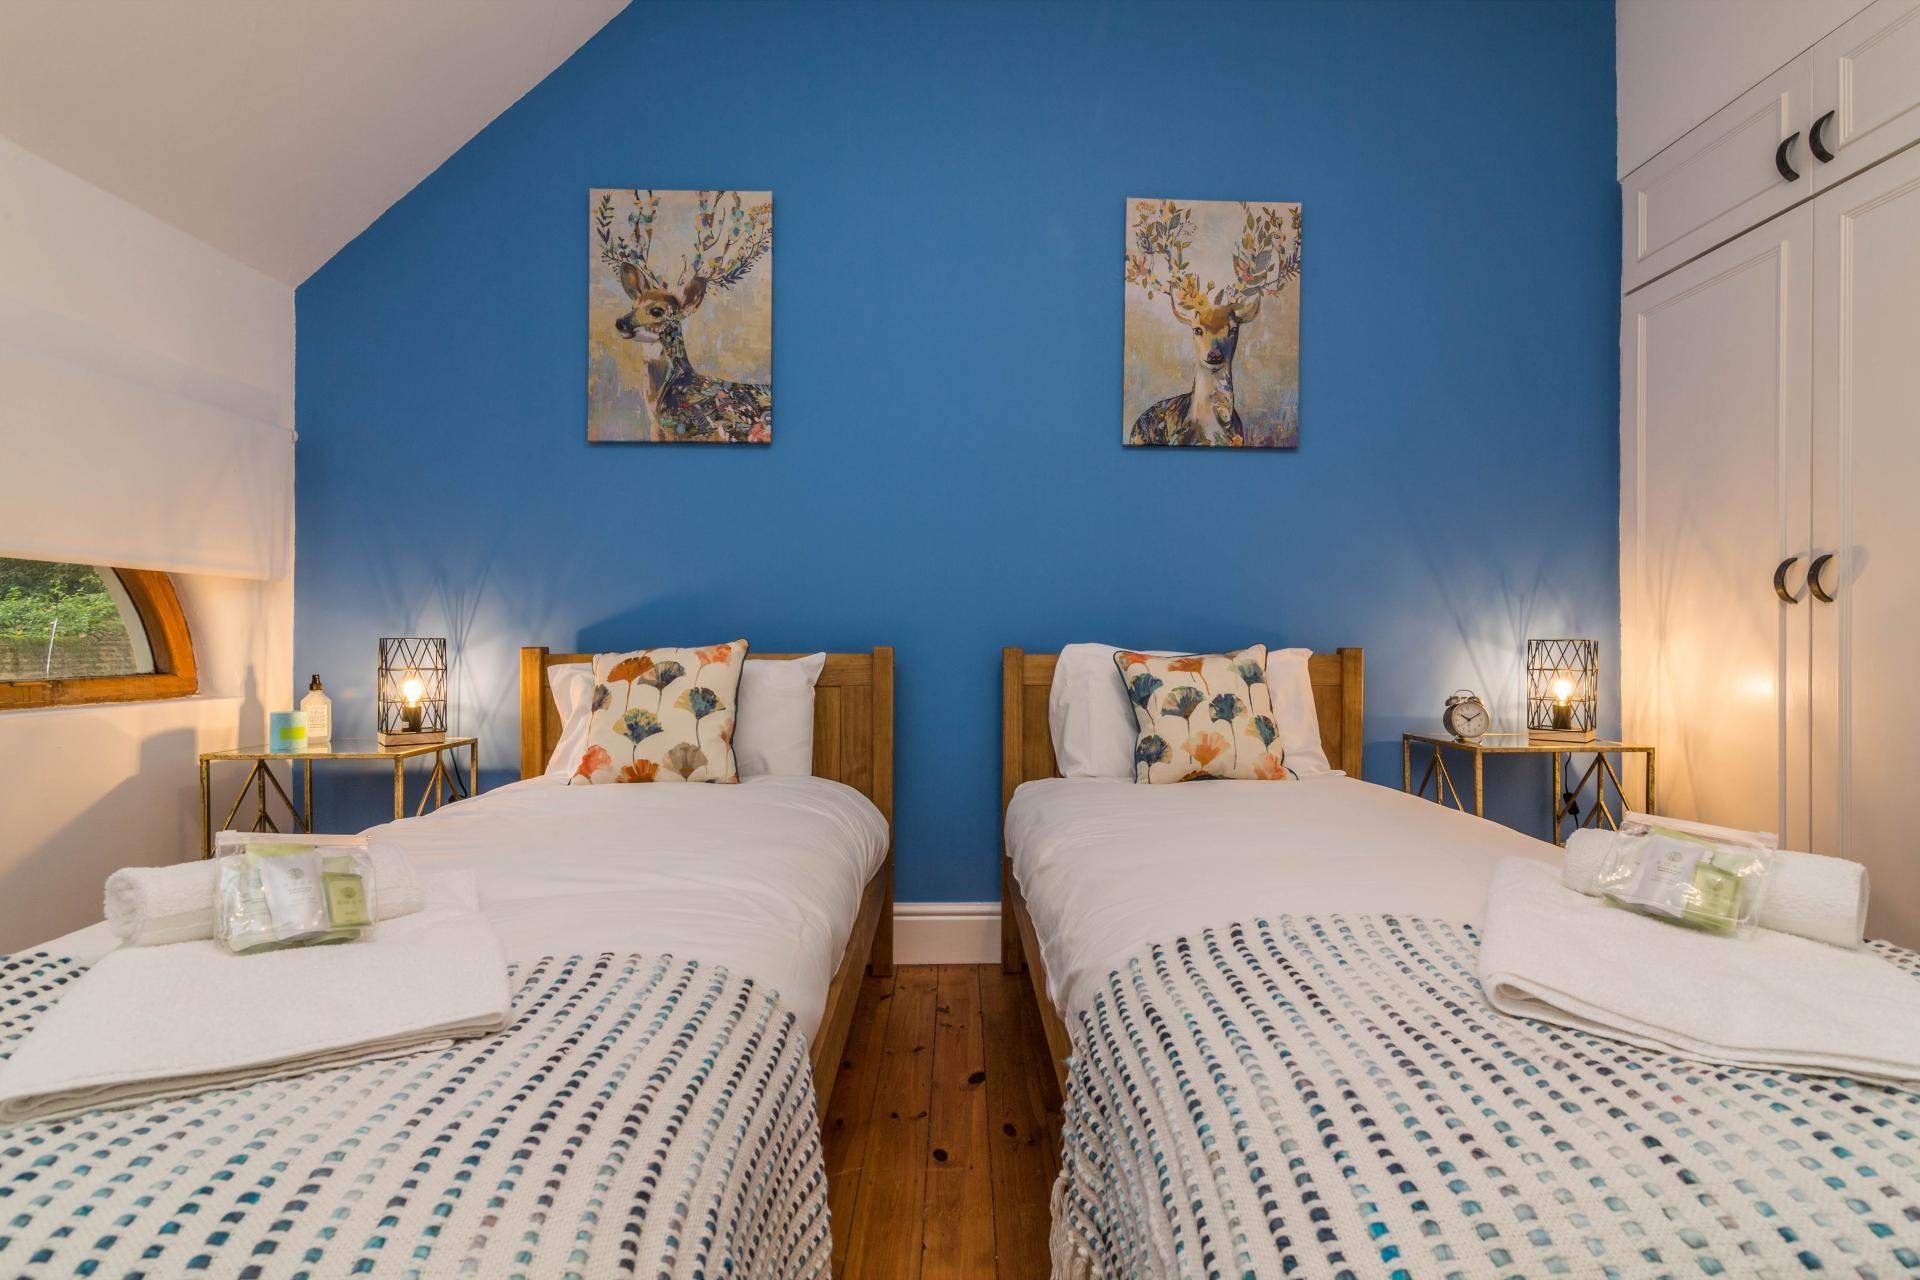 Beds at Mapperley Coach House, Mapperley Park, Nottingham - Citybase Apartments